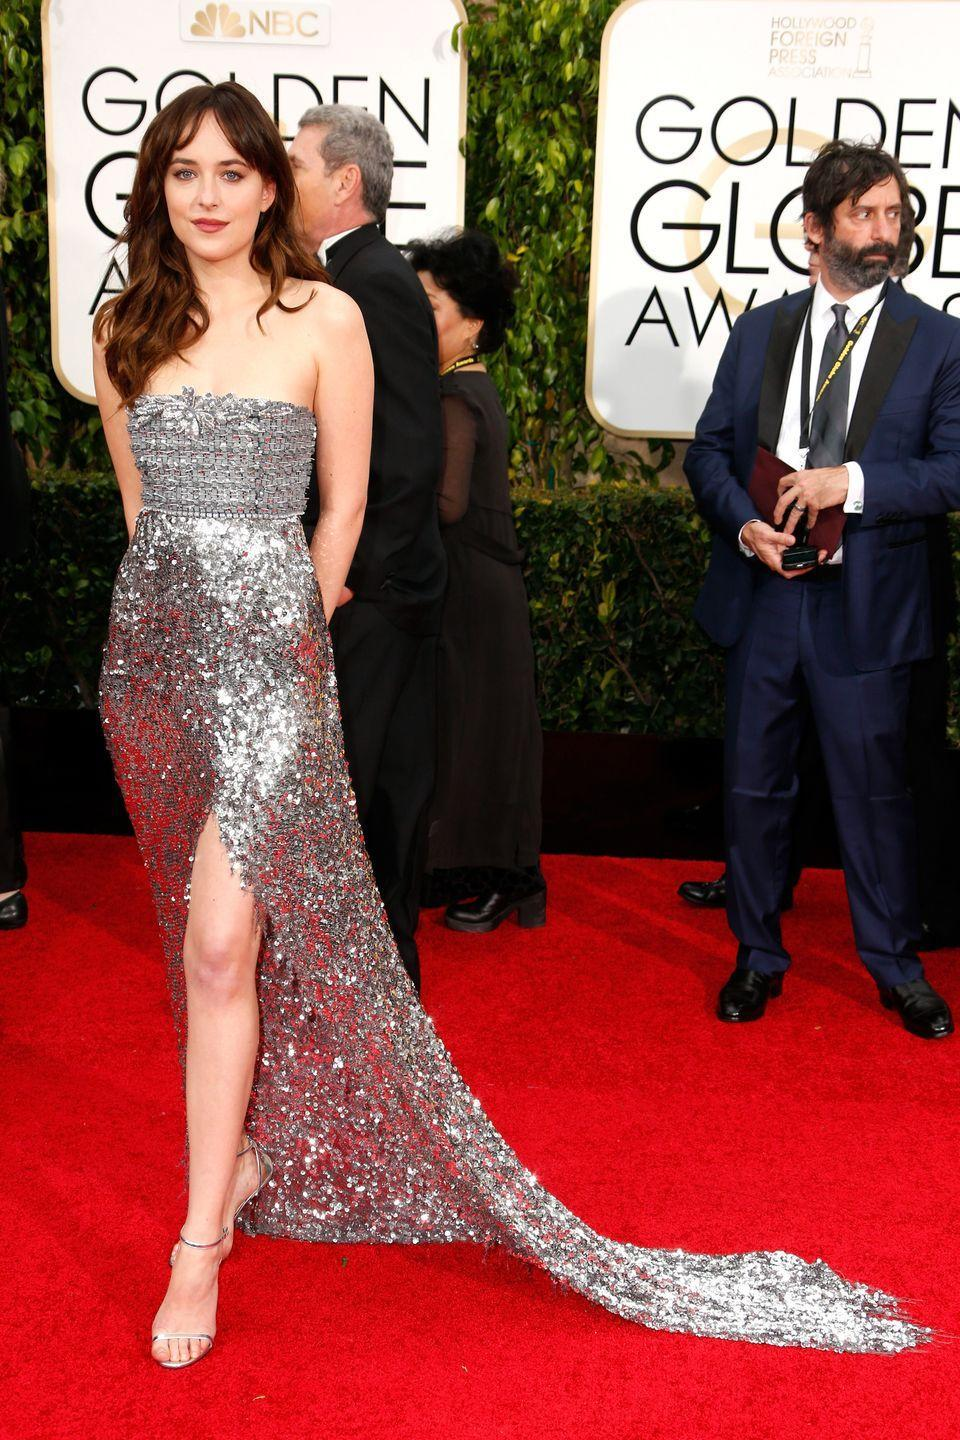 <p>A necomer on the scene in one of the sexiest films of 2015 (50 Shades of Grey), Johnson stunned in glittering Chanel at the ceremony.</p>